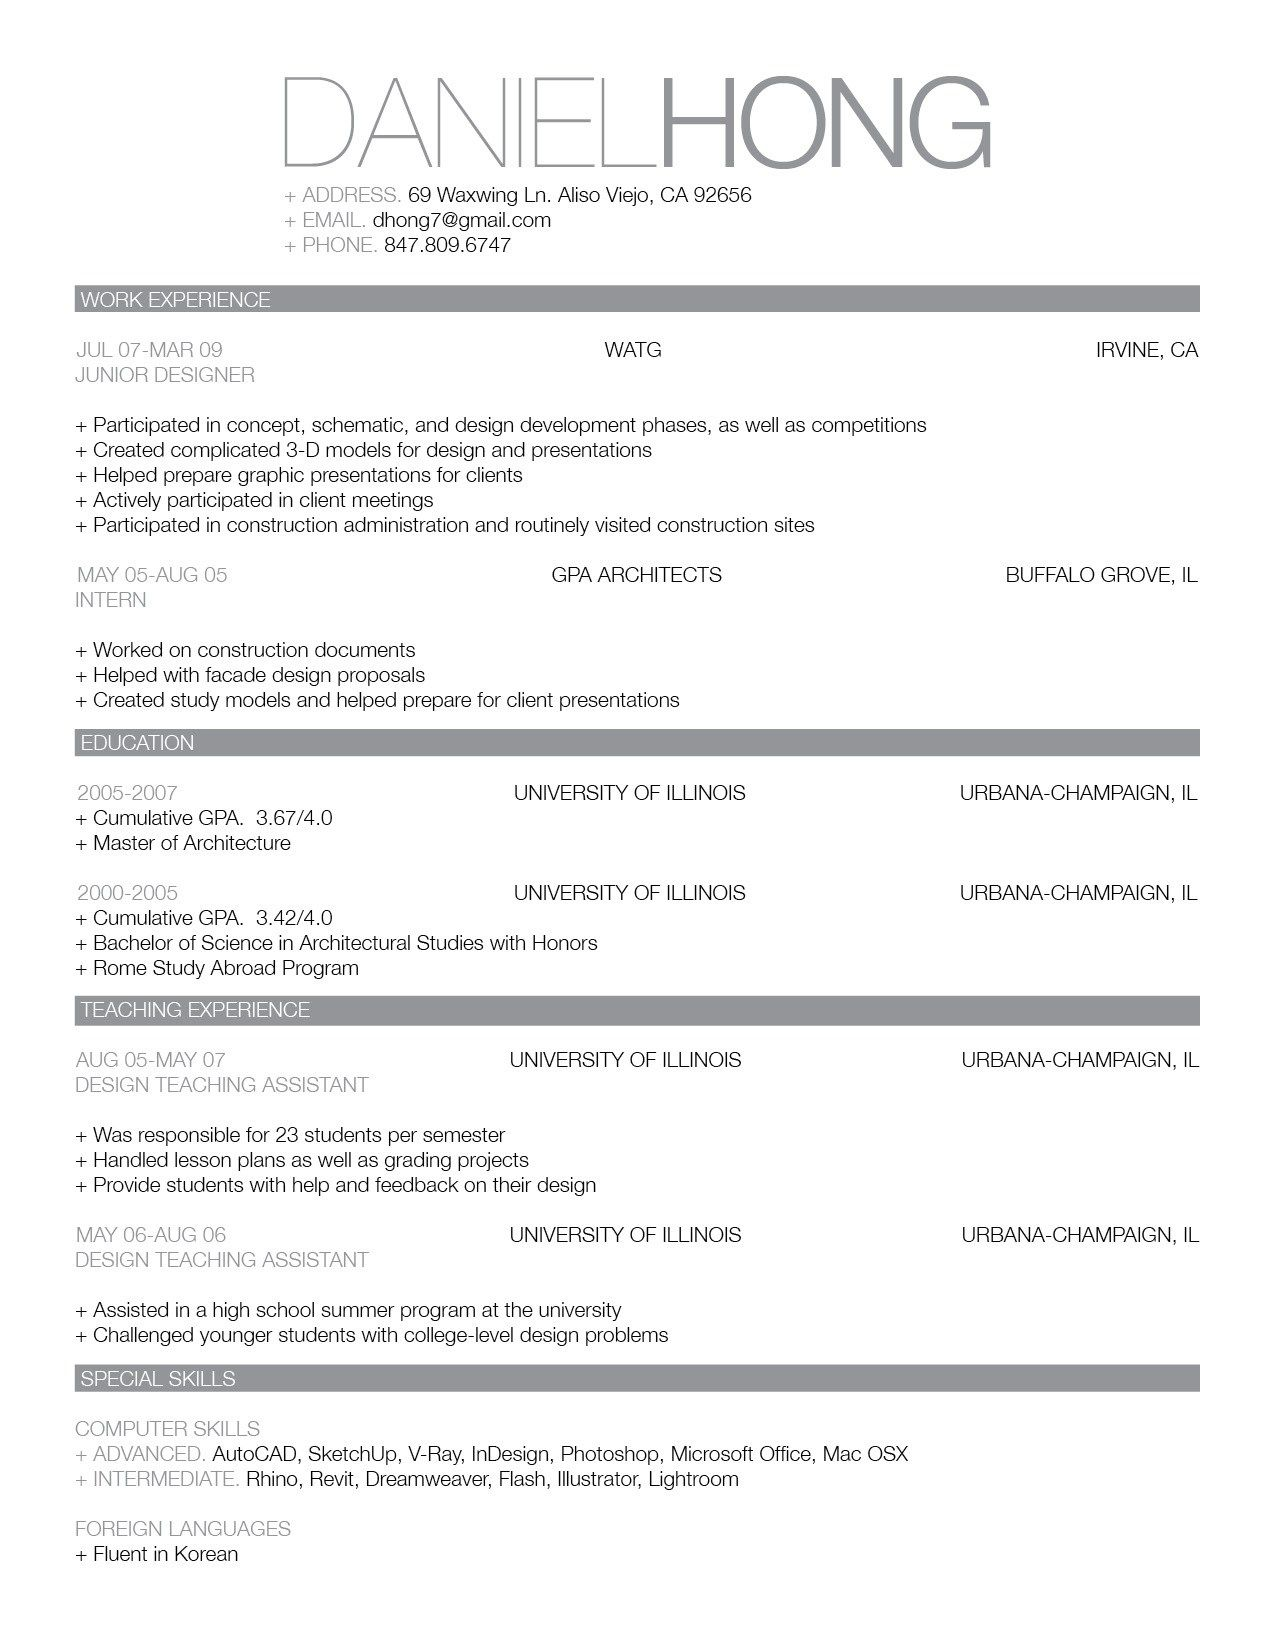 cv template spanish sample customer service resume professional templates word doc the all about template professional resume cv template professional cv